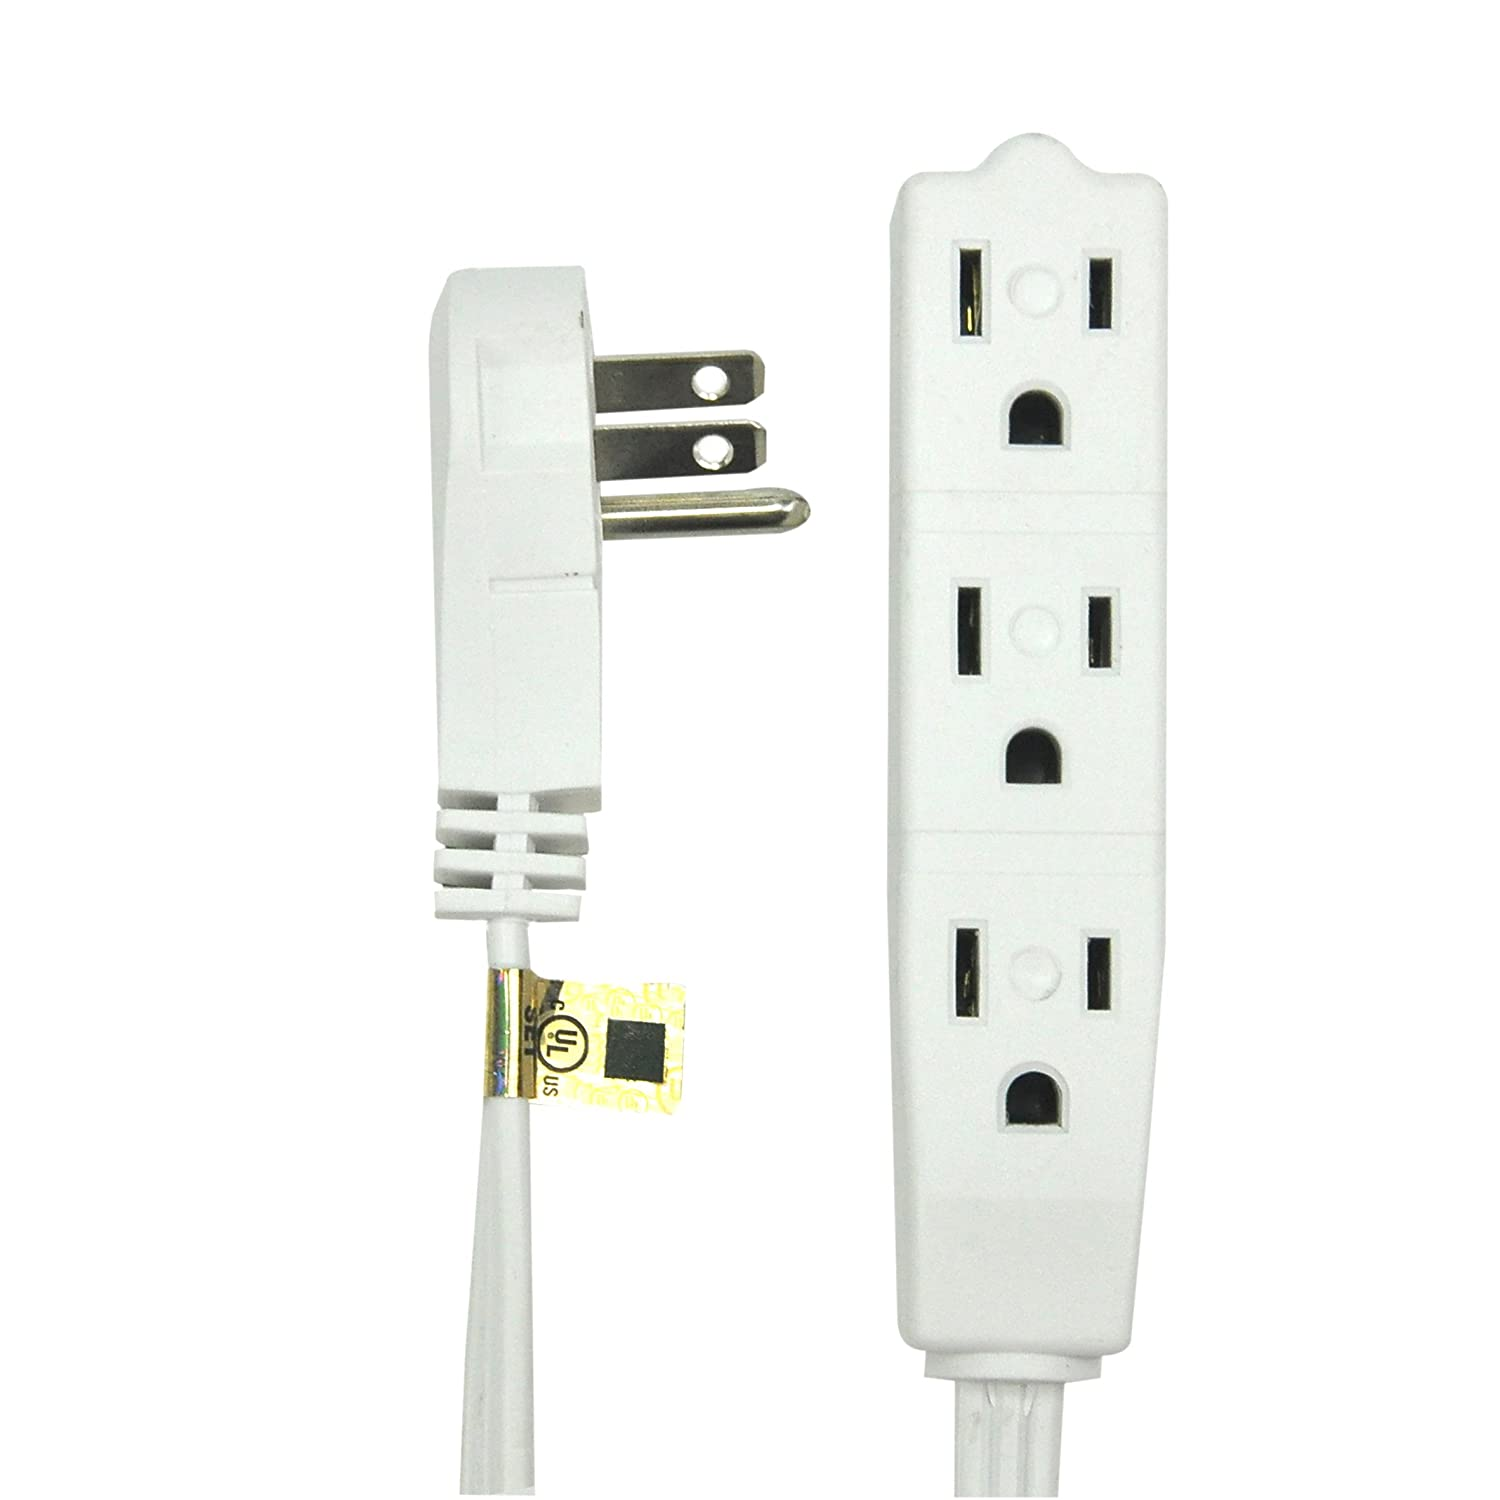 NEW! BindMaster 8 Feet Extension Cord/Wire, 3 Prong Grounded, 3 outlets, Angeled Flat Plug , White